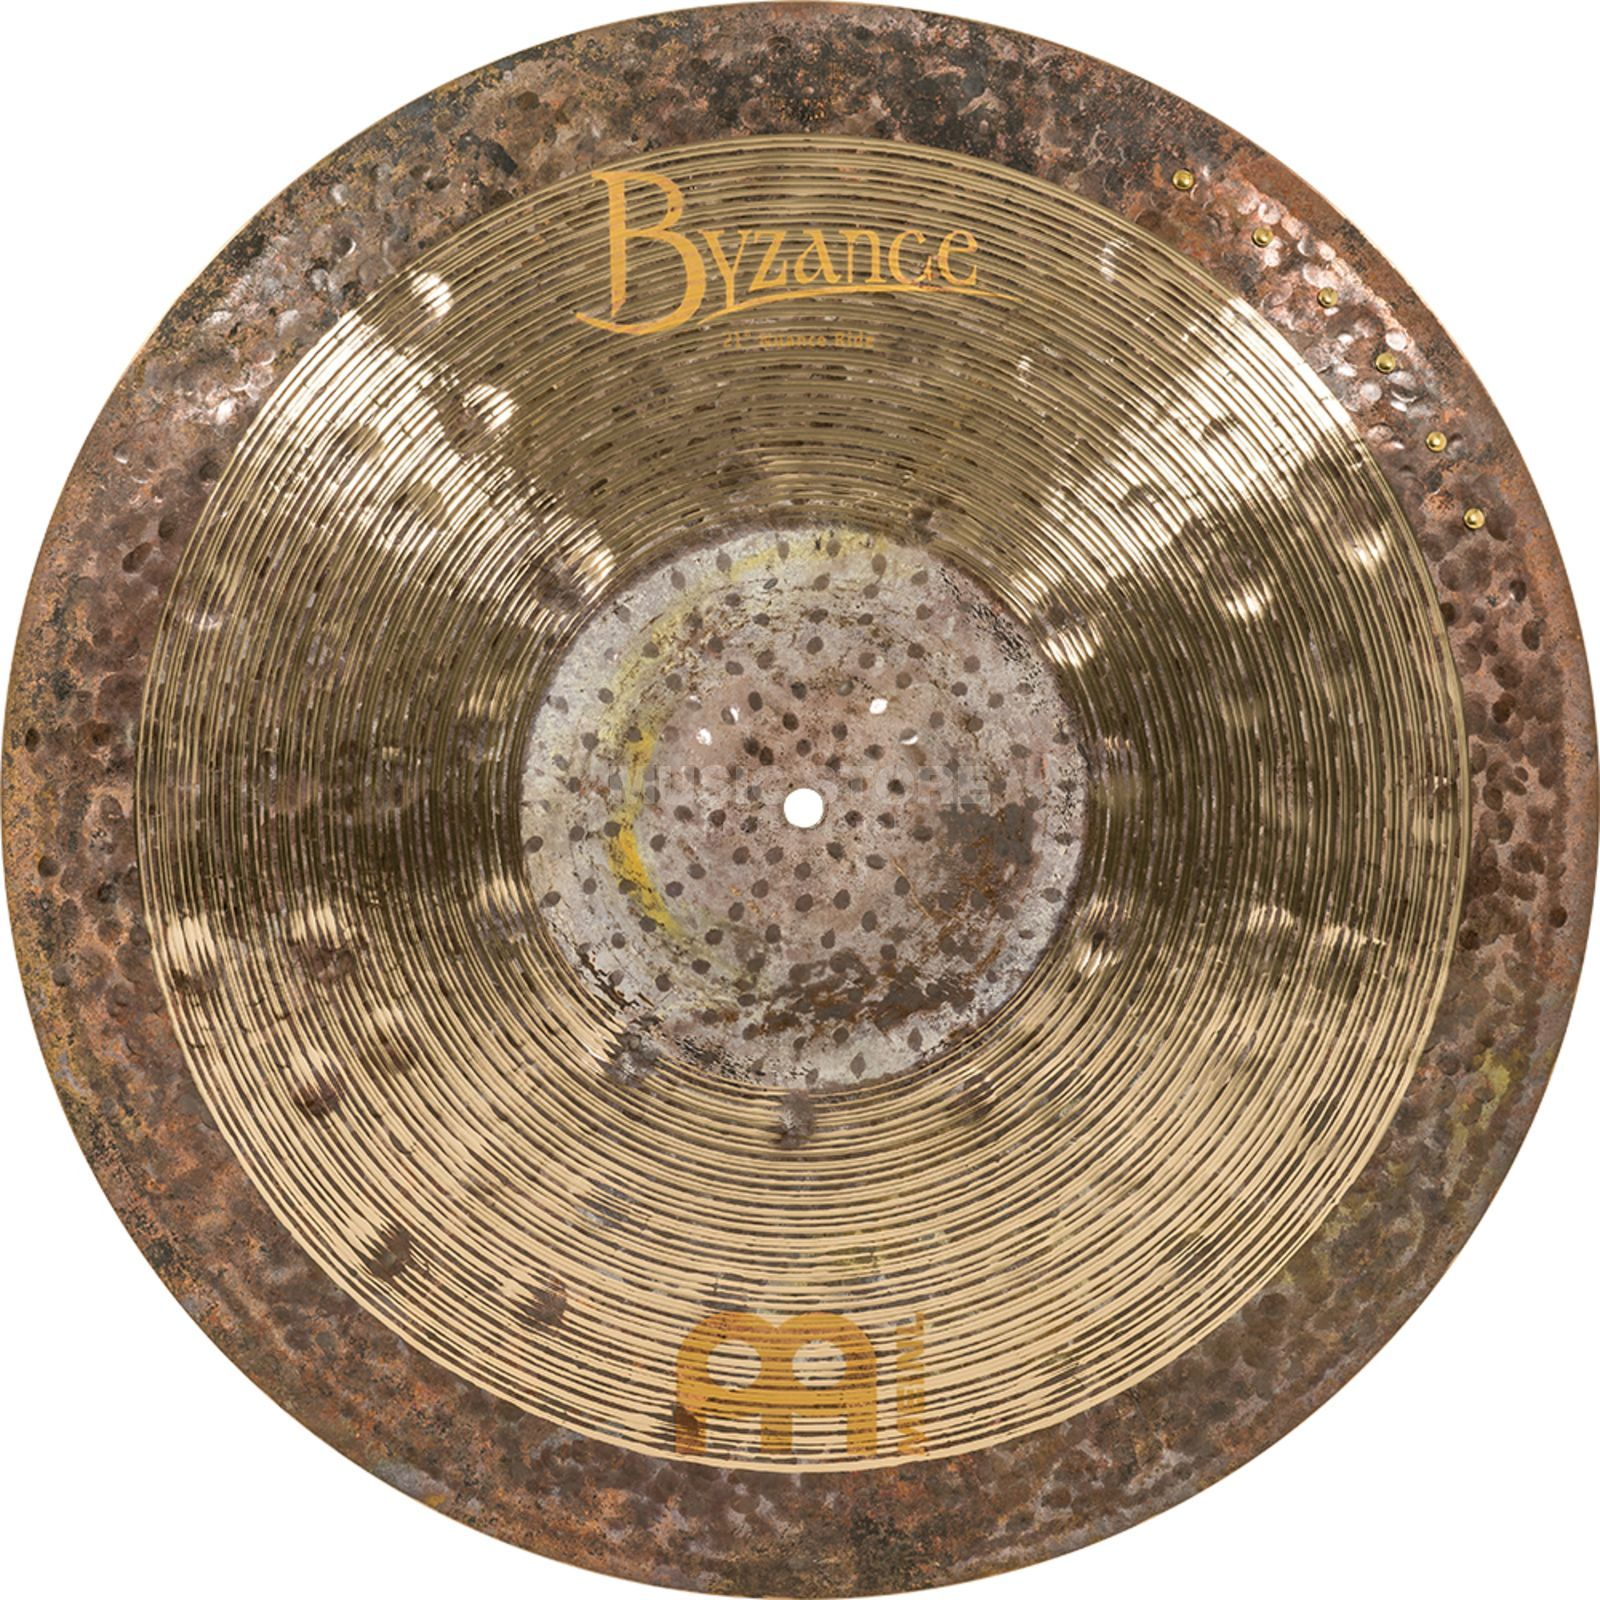 "Meinl Byzance Nuance Ride 21"", B21NUR, Jazz Product Image"